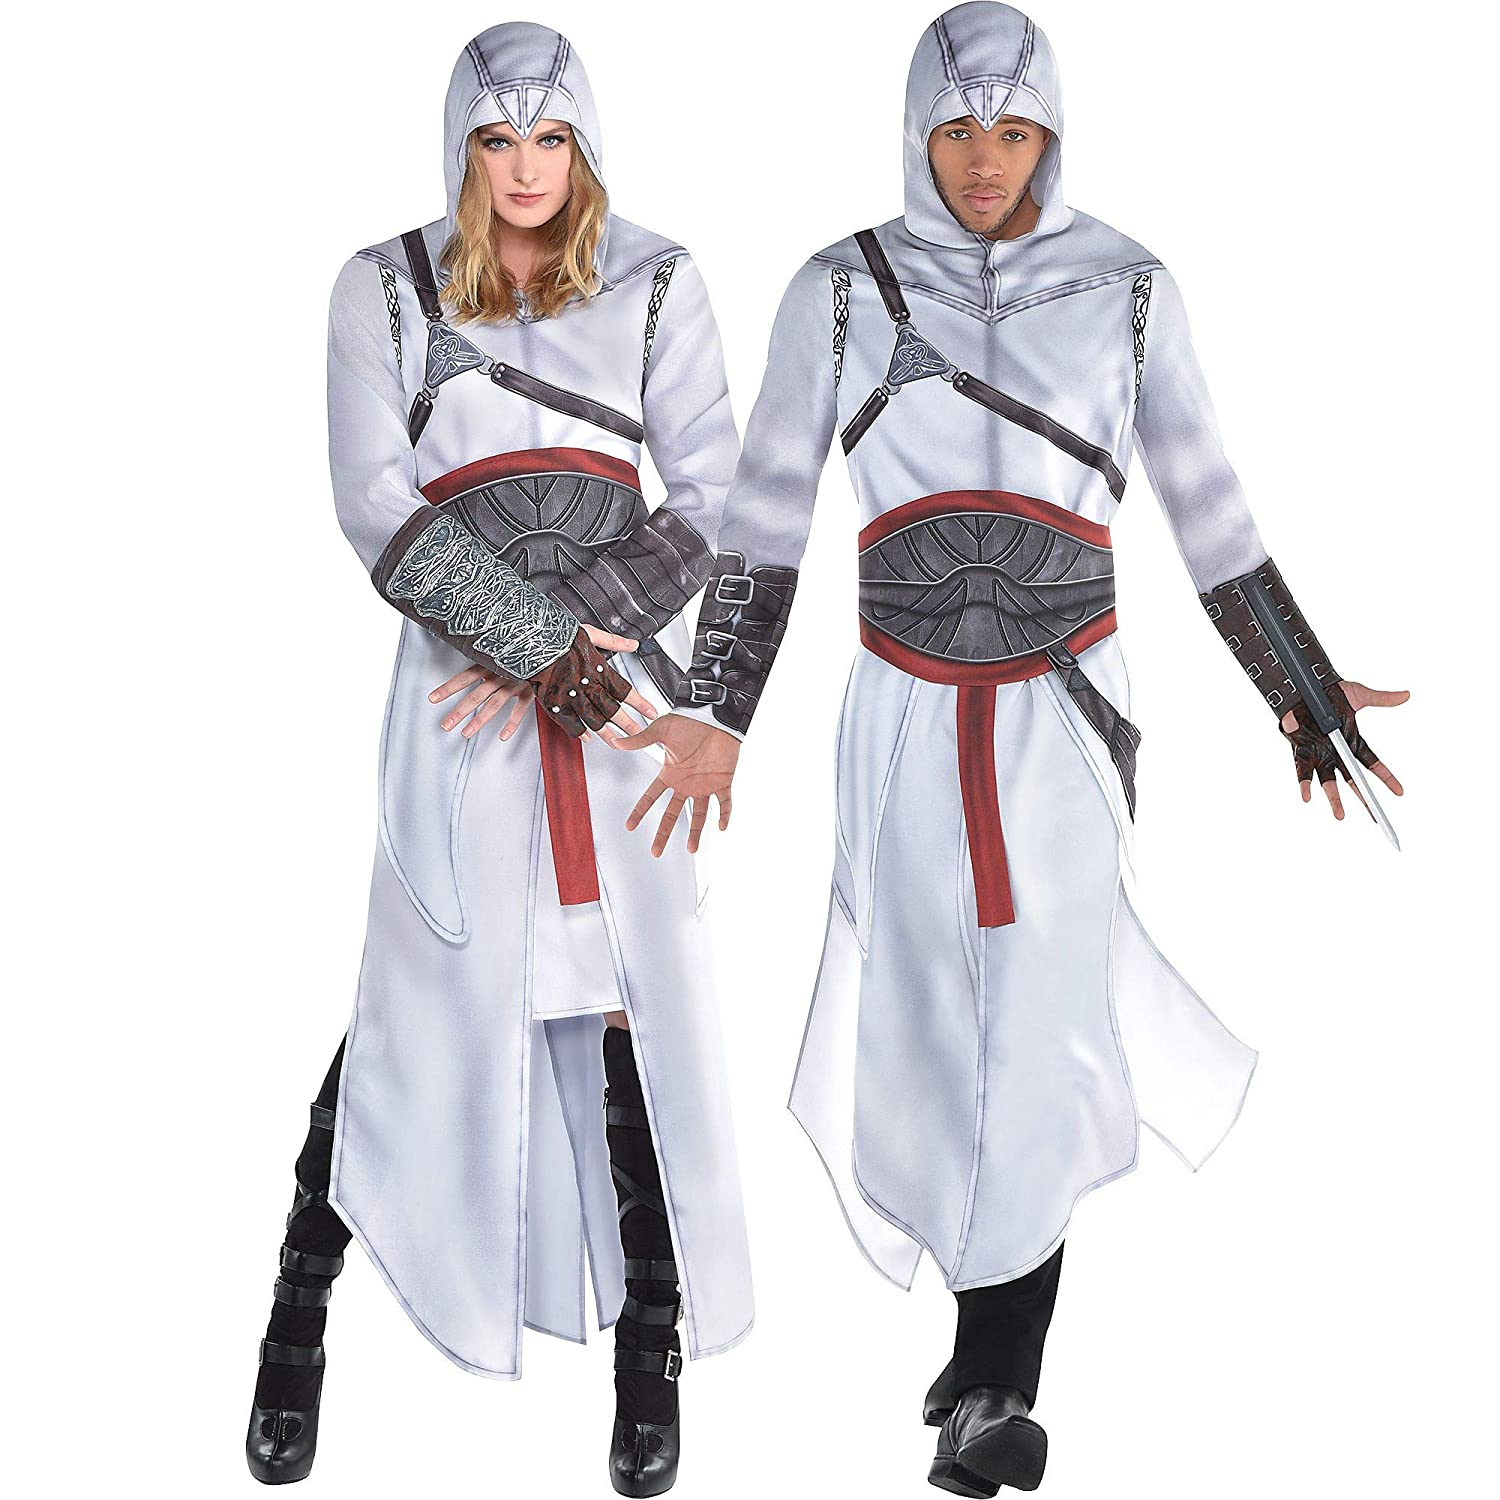 Party City Altair - Disfraz de altair para Halloween, para Adultos ...